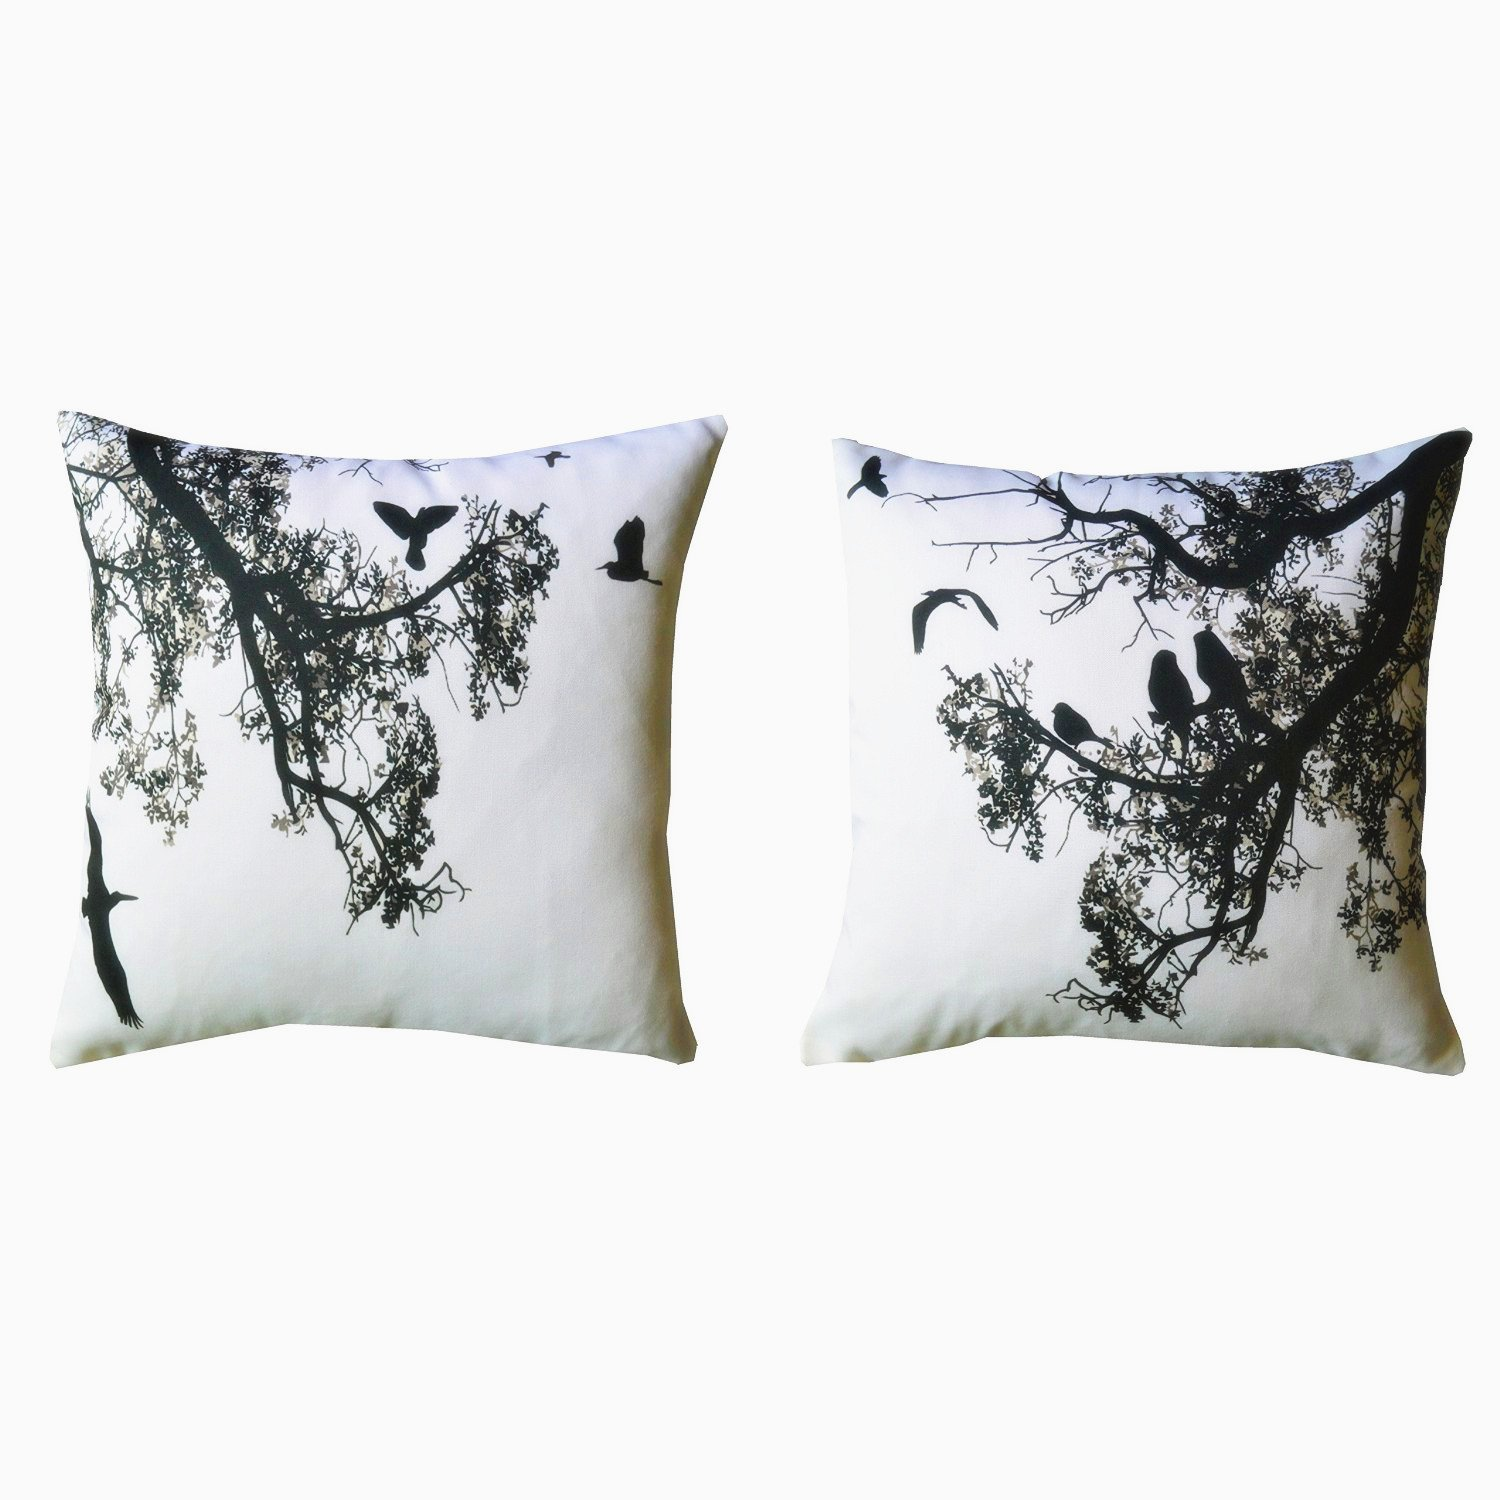 throw pillow furniture cheap by for decorative cozy home covers couch newport accessories red pillows ideas